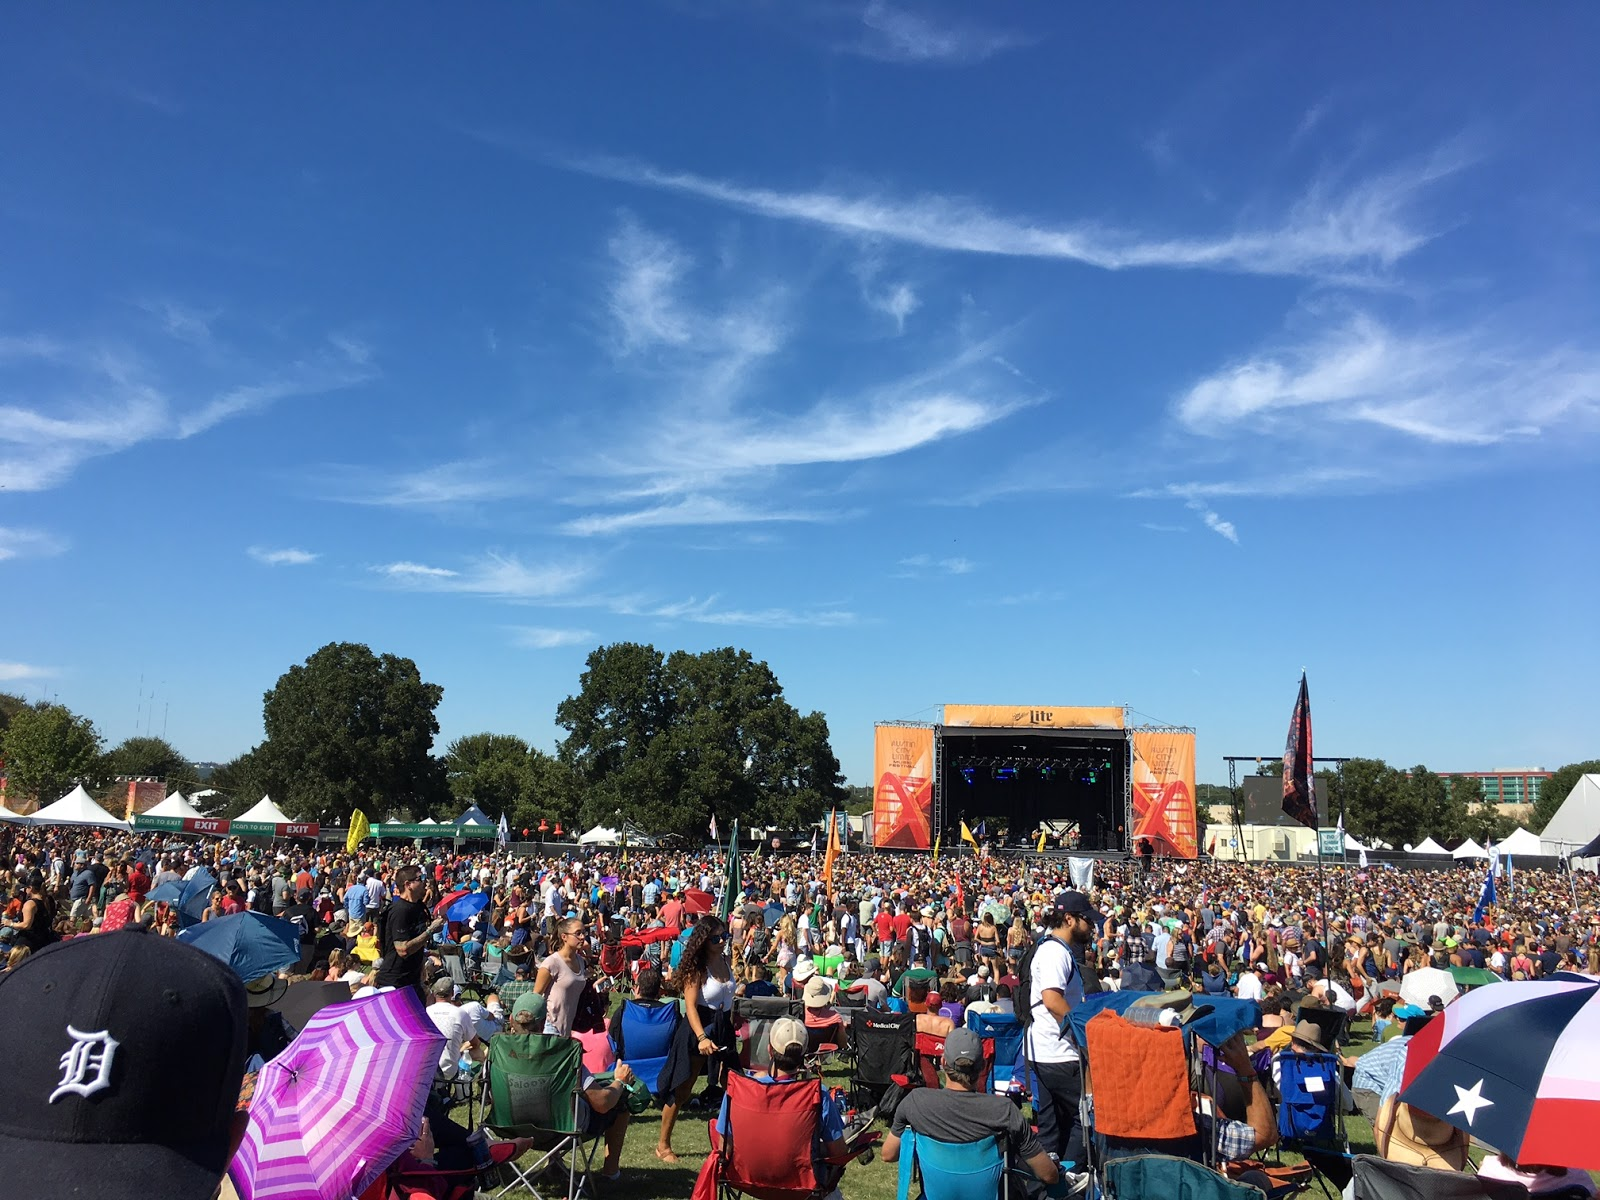 The Front Bottoms brought in a big crowd at ACL this year.